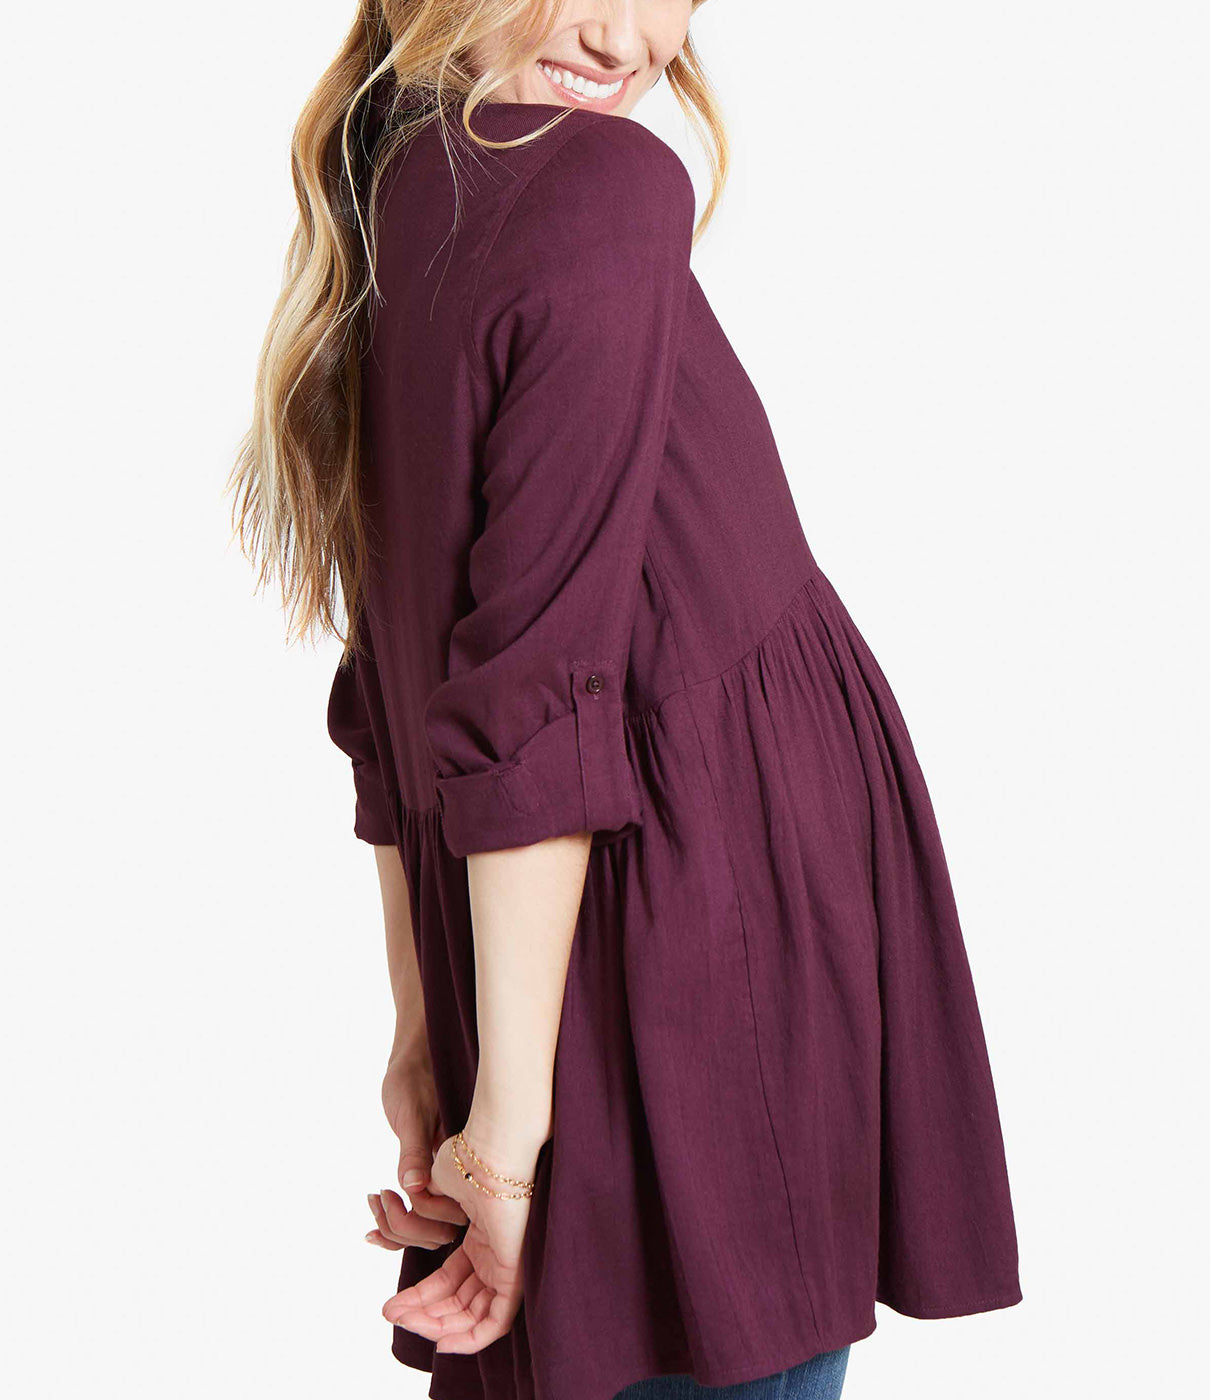 CHOICE COLORSA white button-down is a maternity wardrobe must, but you might want to grab one in plum too, the perfect hue for your favorite fall looks.